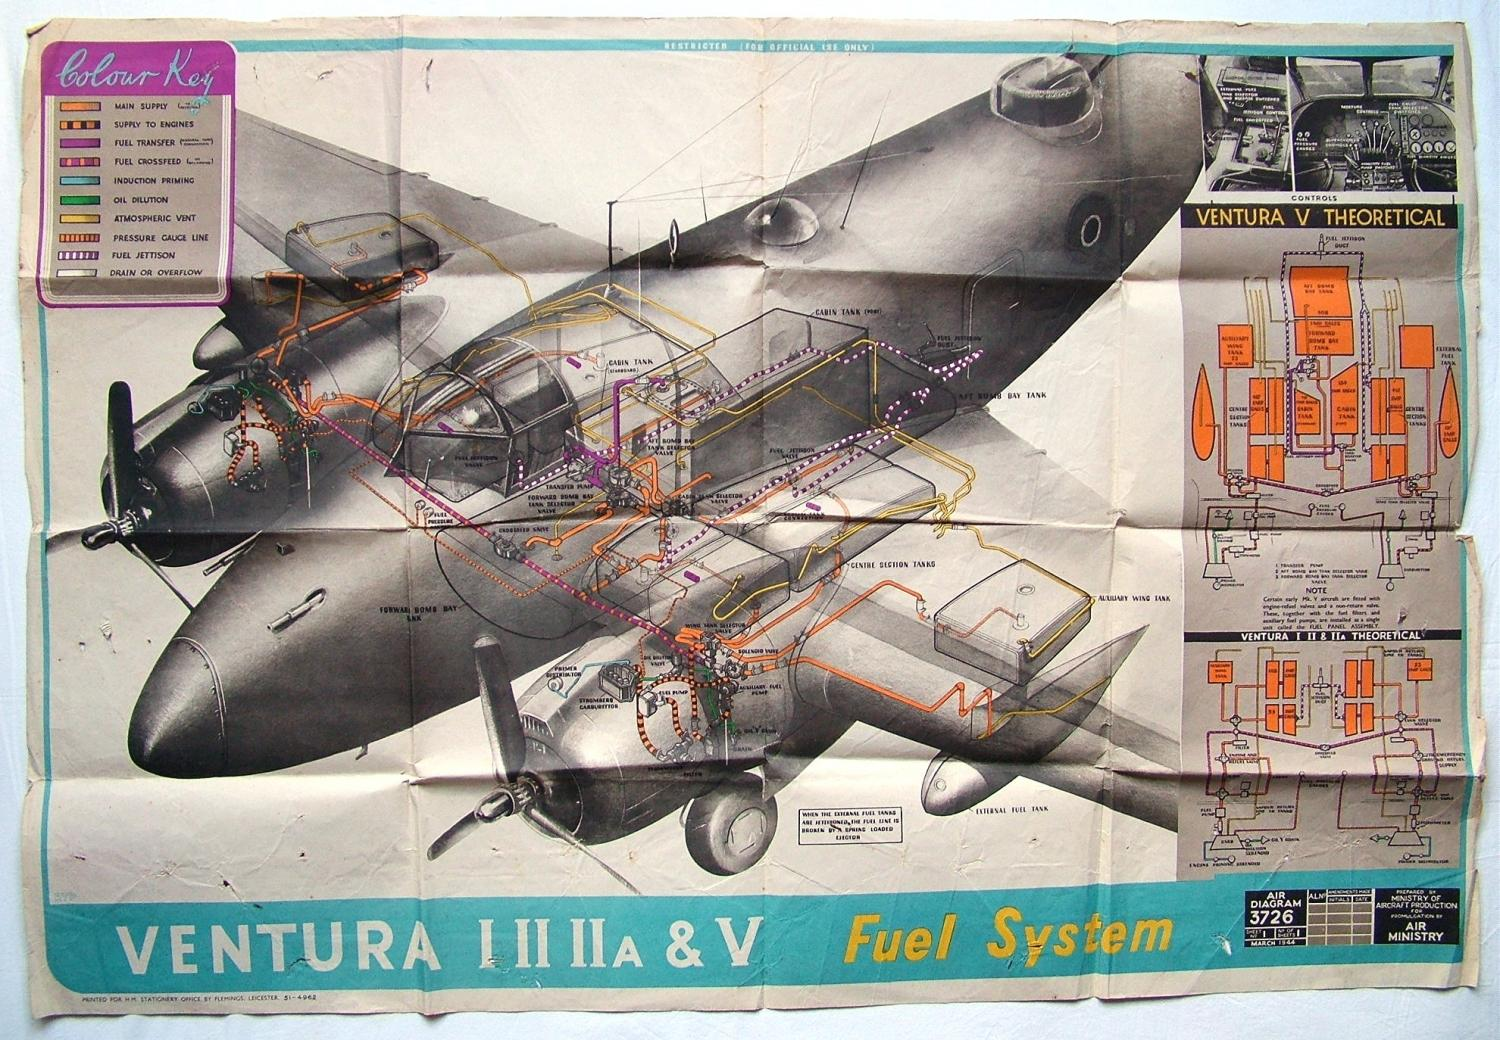 RAF Air Diagram - Ventura Fuel System